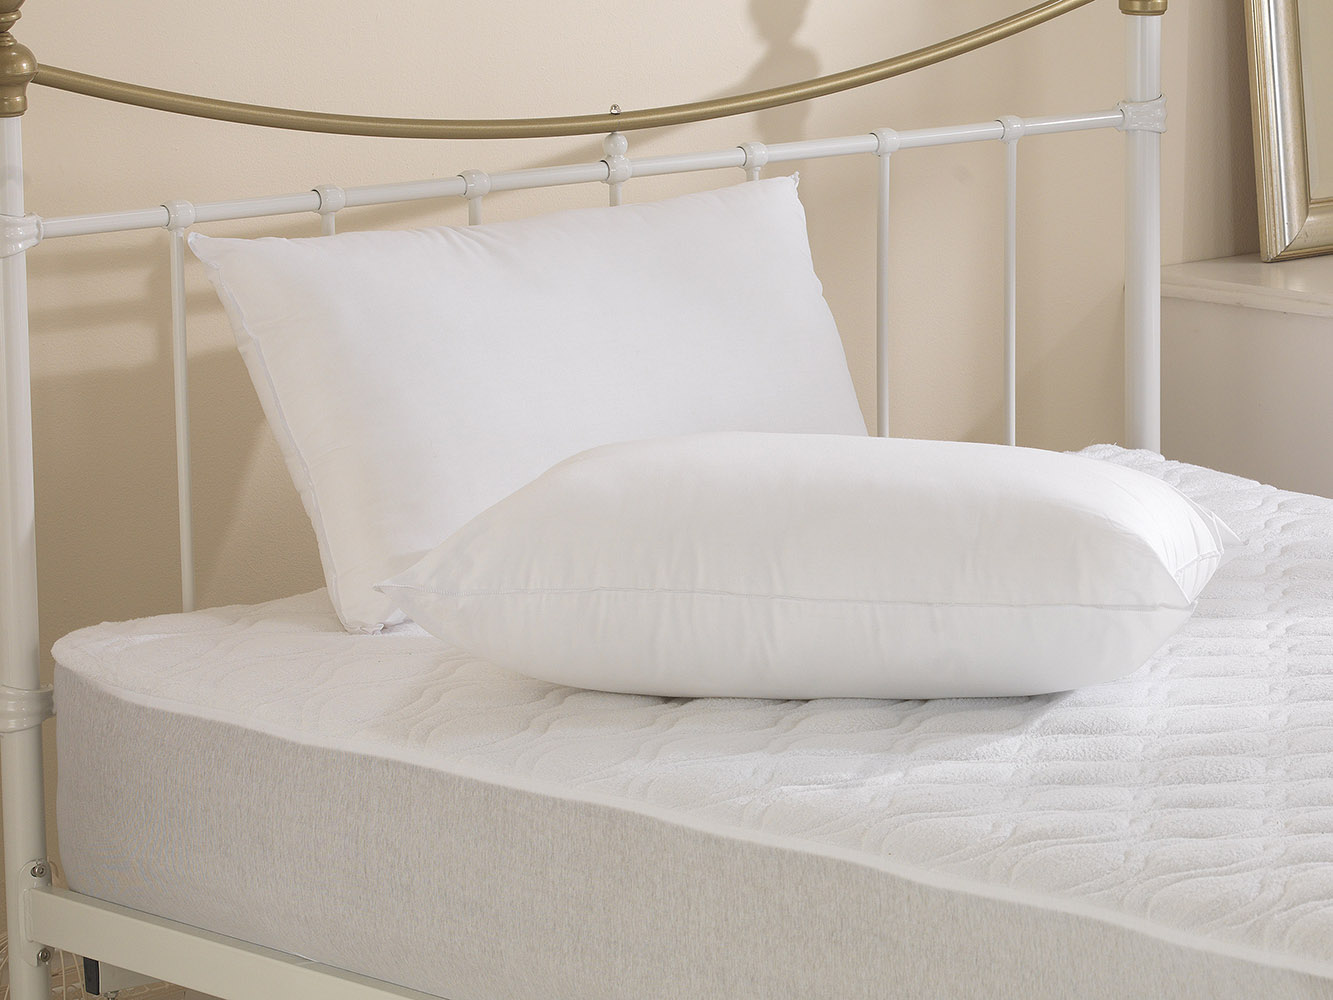 The BIG One - 1000g Filled Hollowfibre Super Bounce Back Pillow